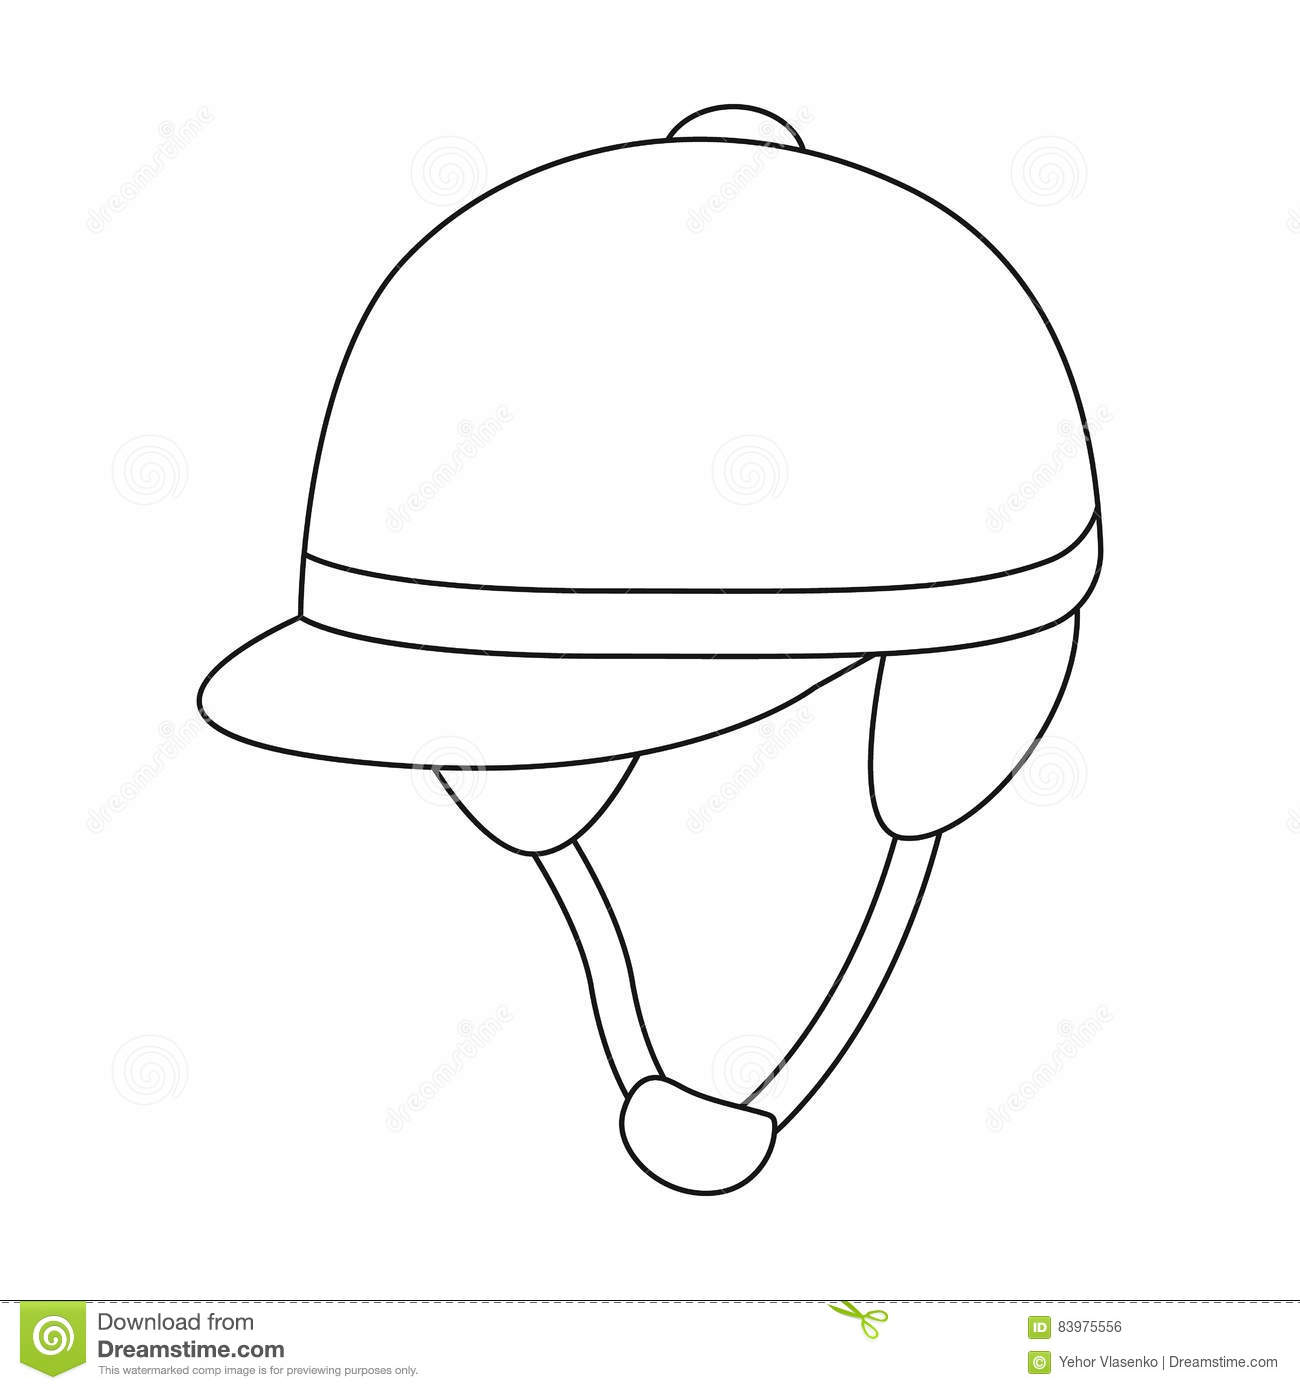 Horse Riding Helmet Stock Photos Illustrations And Vector